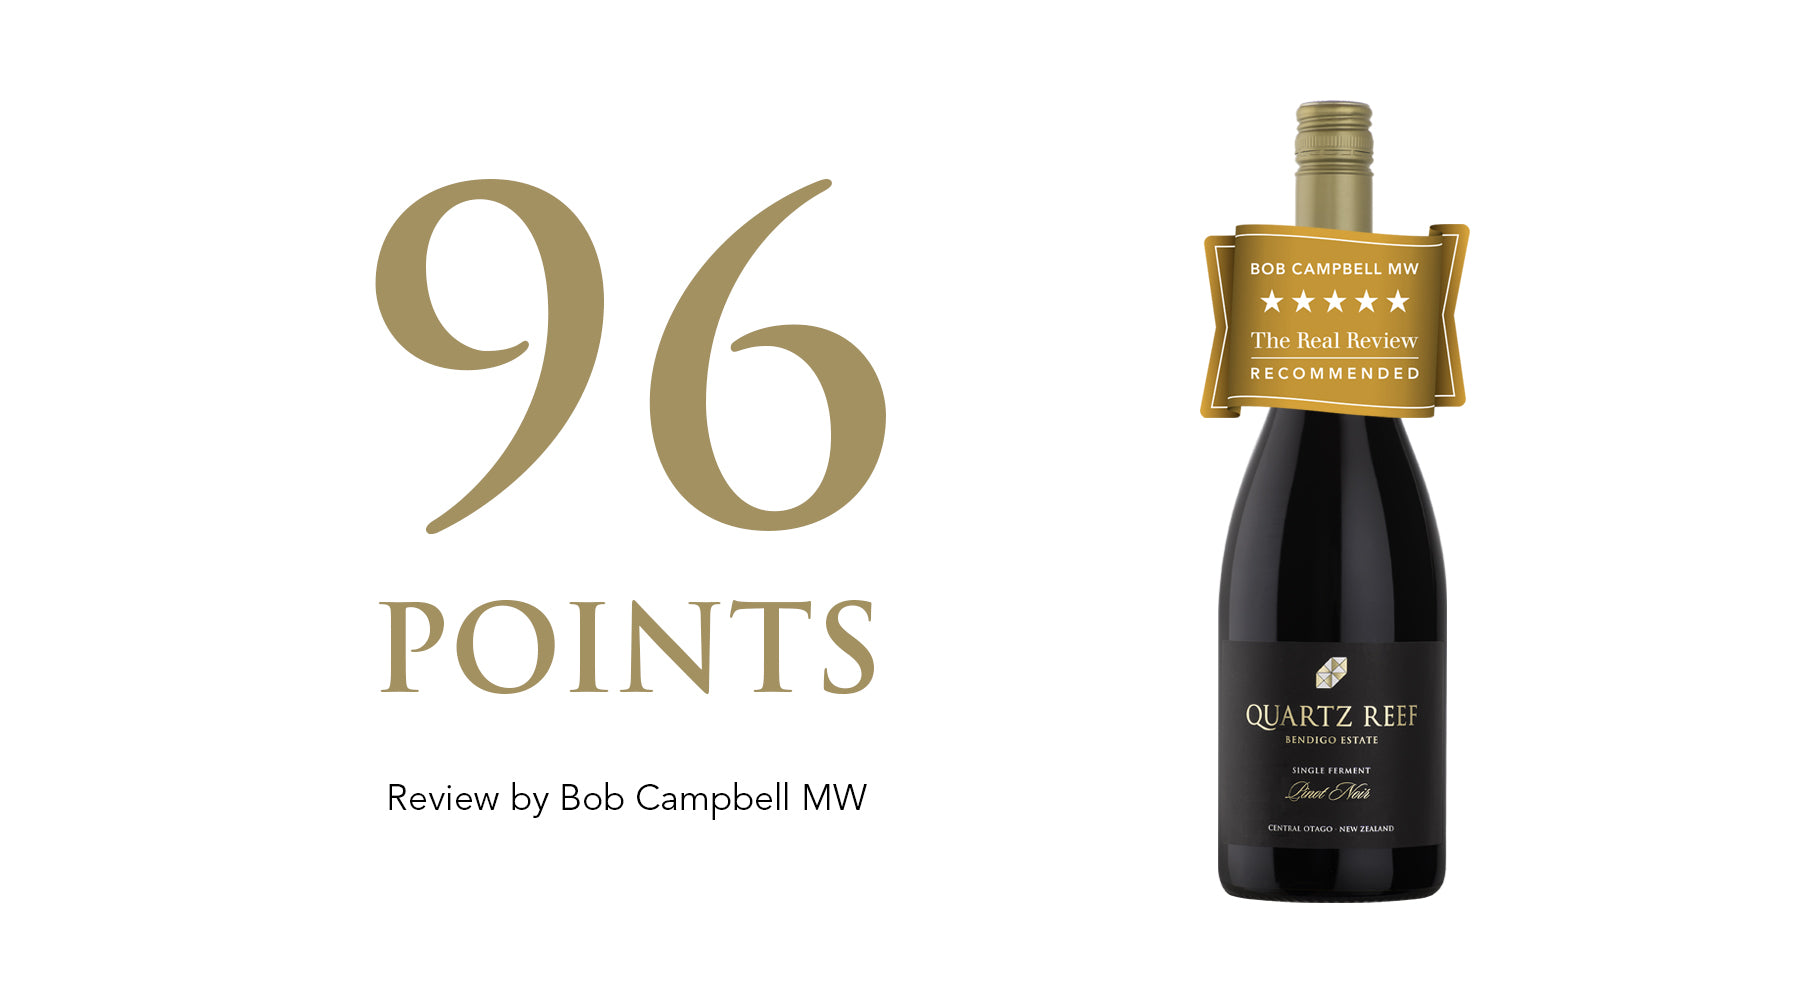 Bendigo Estate Pinot Noir 2018 - Awarded 96 Points